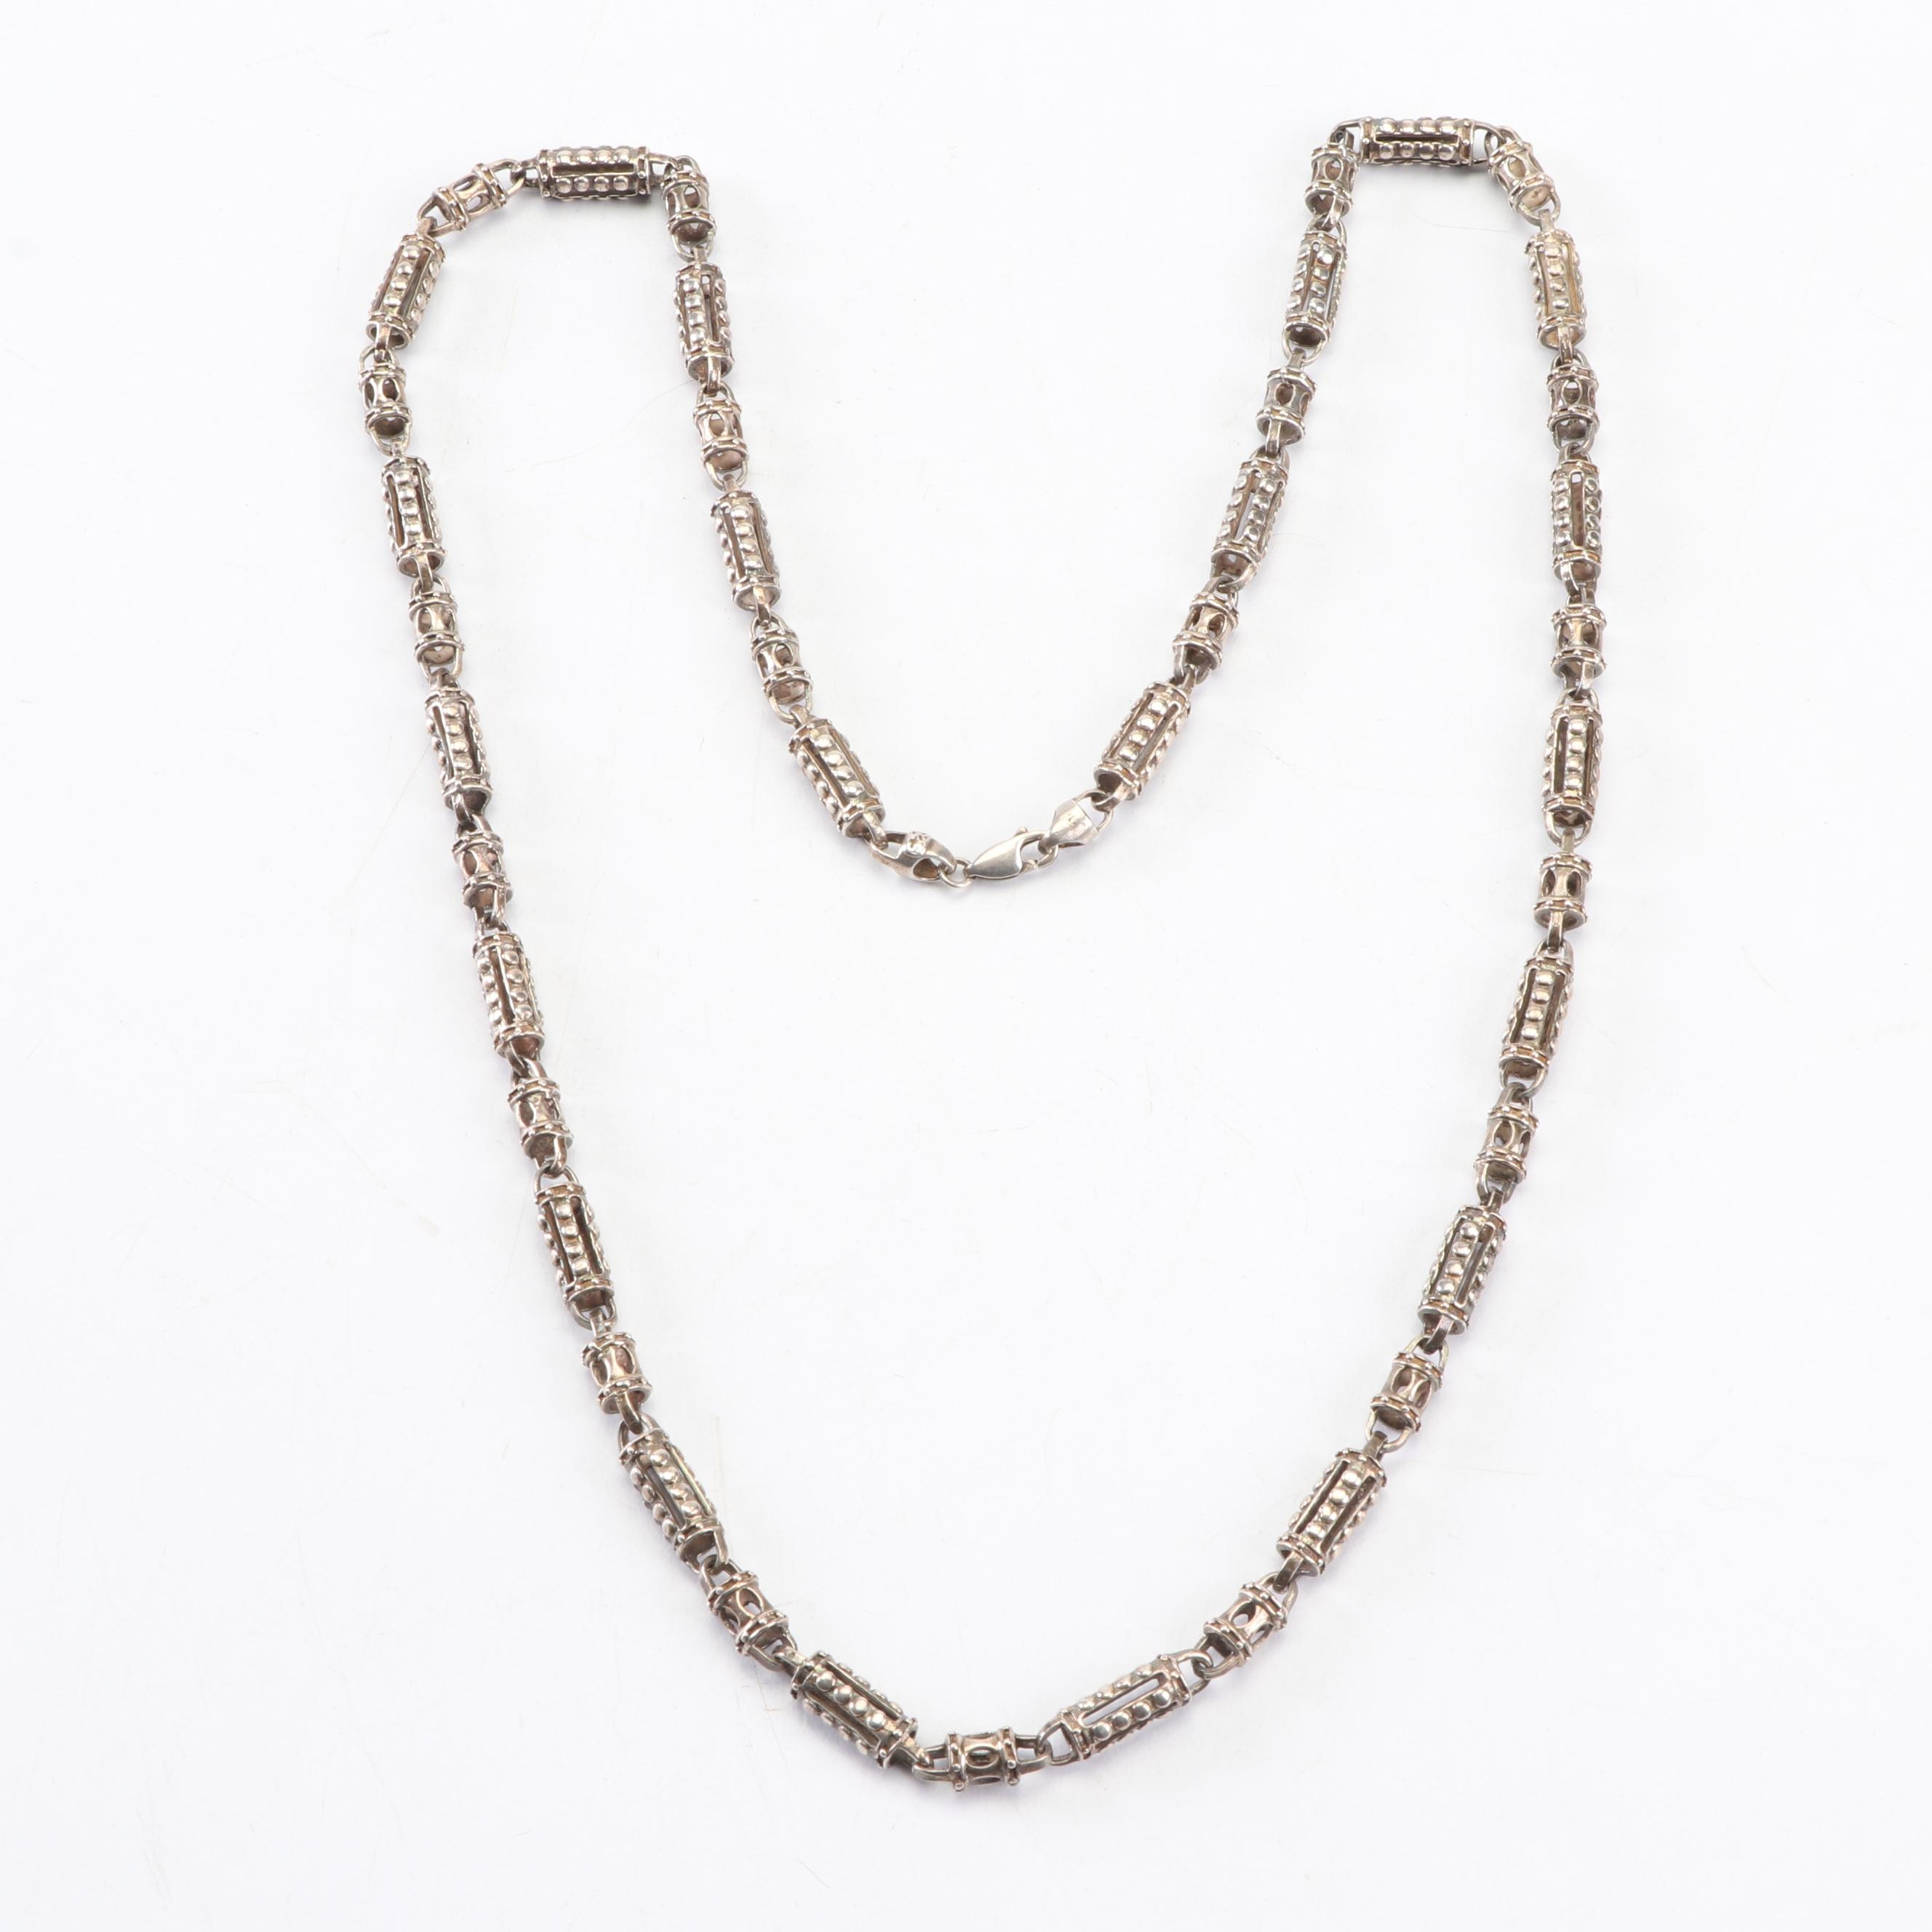 Sterling Silver Hand-Cast Beaded Link Necklace with Lobster Claw Clasp